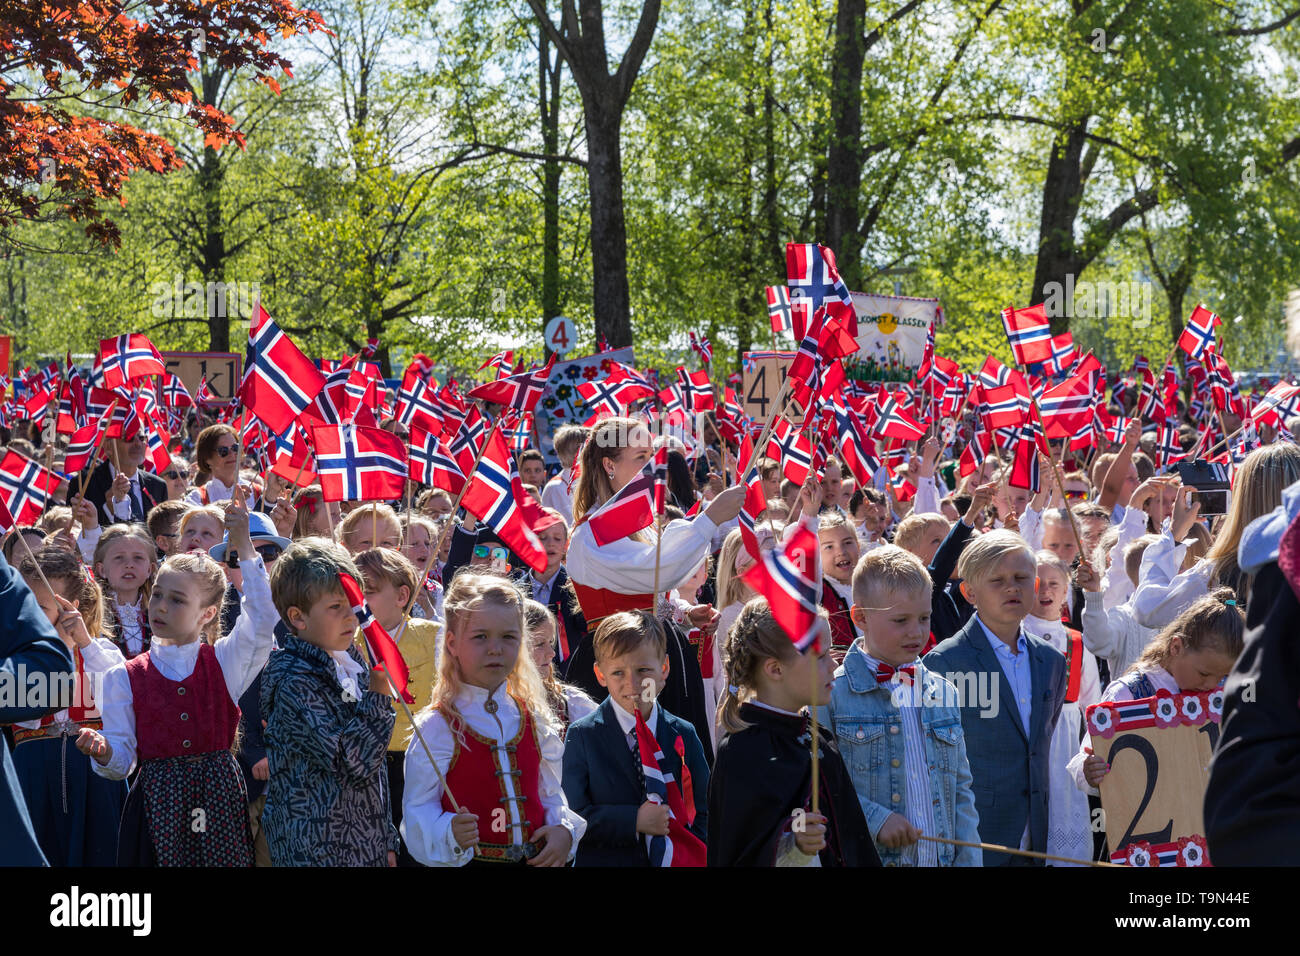 17th May Norwegian Constitution Day celebrations in Sandefjord Stock Photo